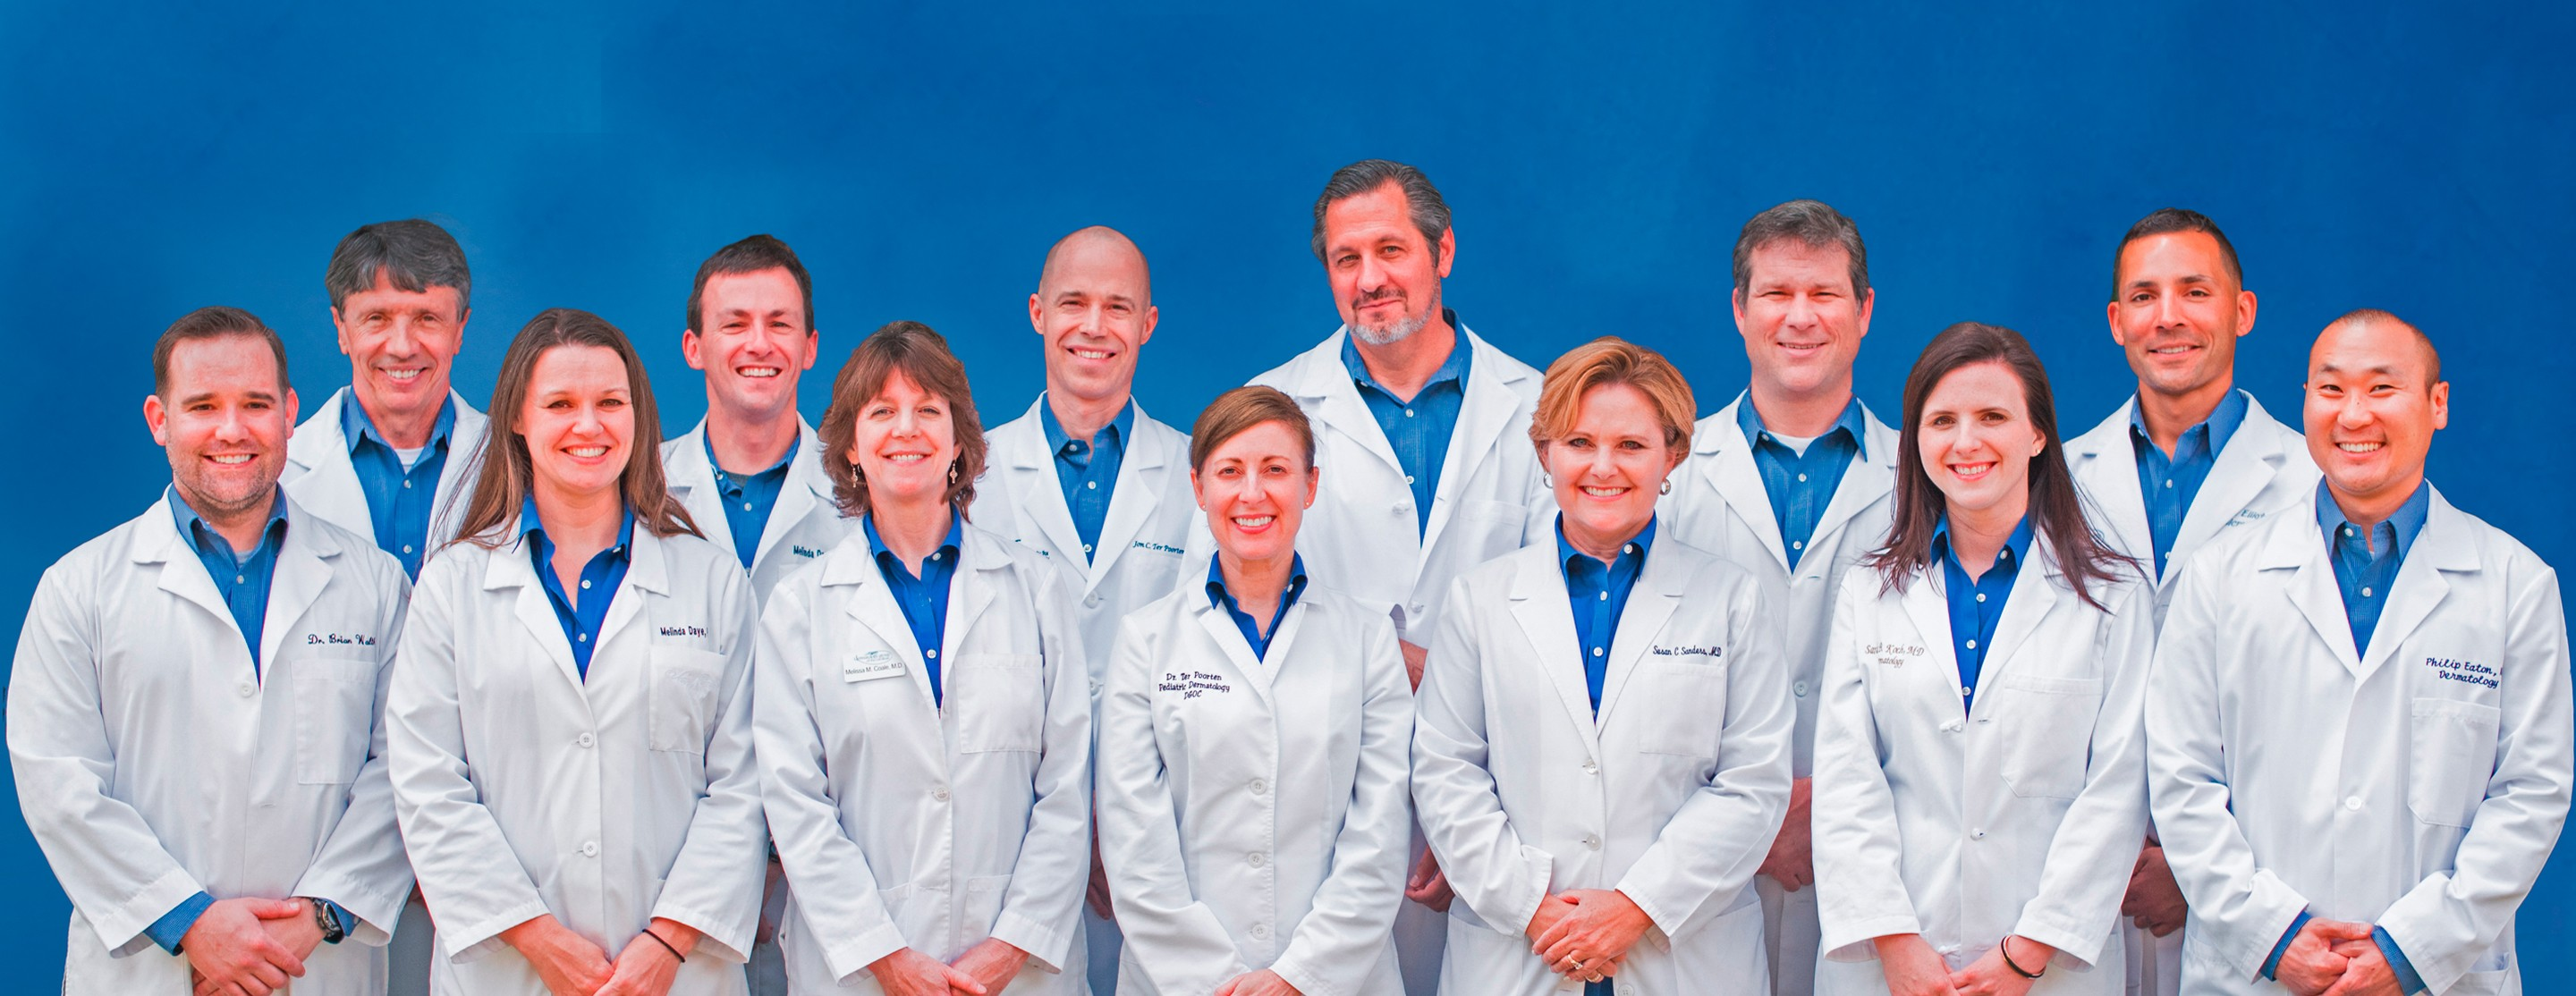 Dermatology Group of the Carolinas | LinkedIn